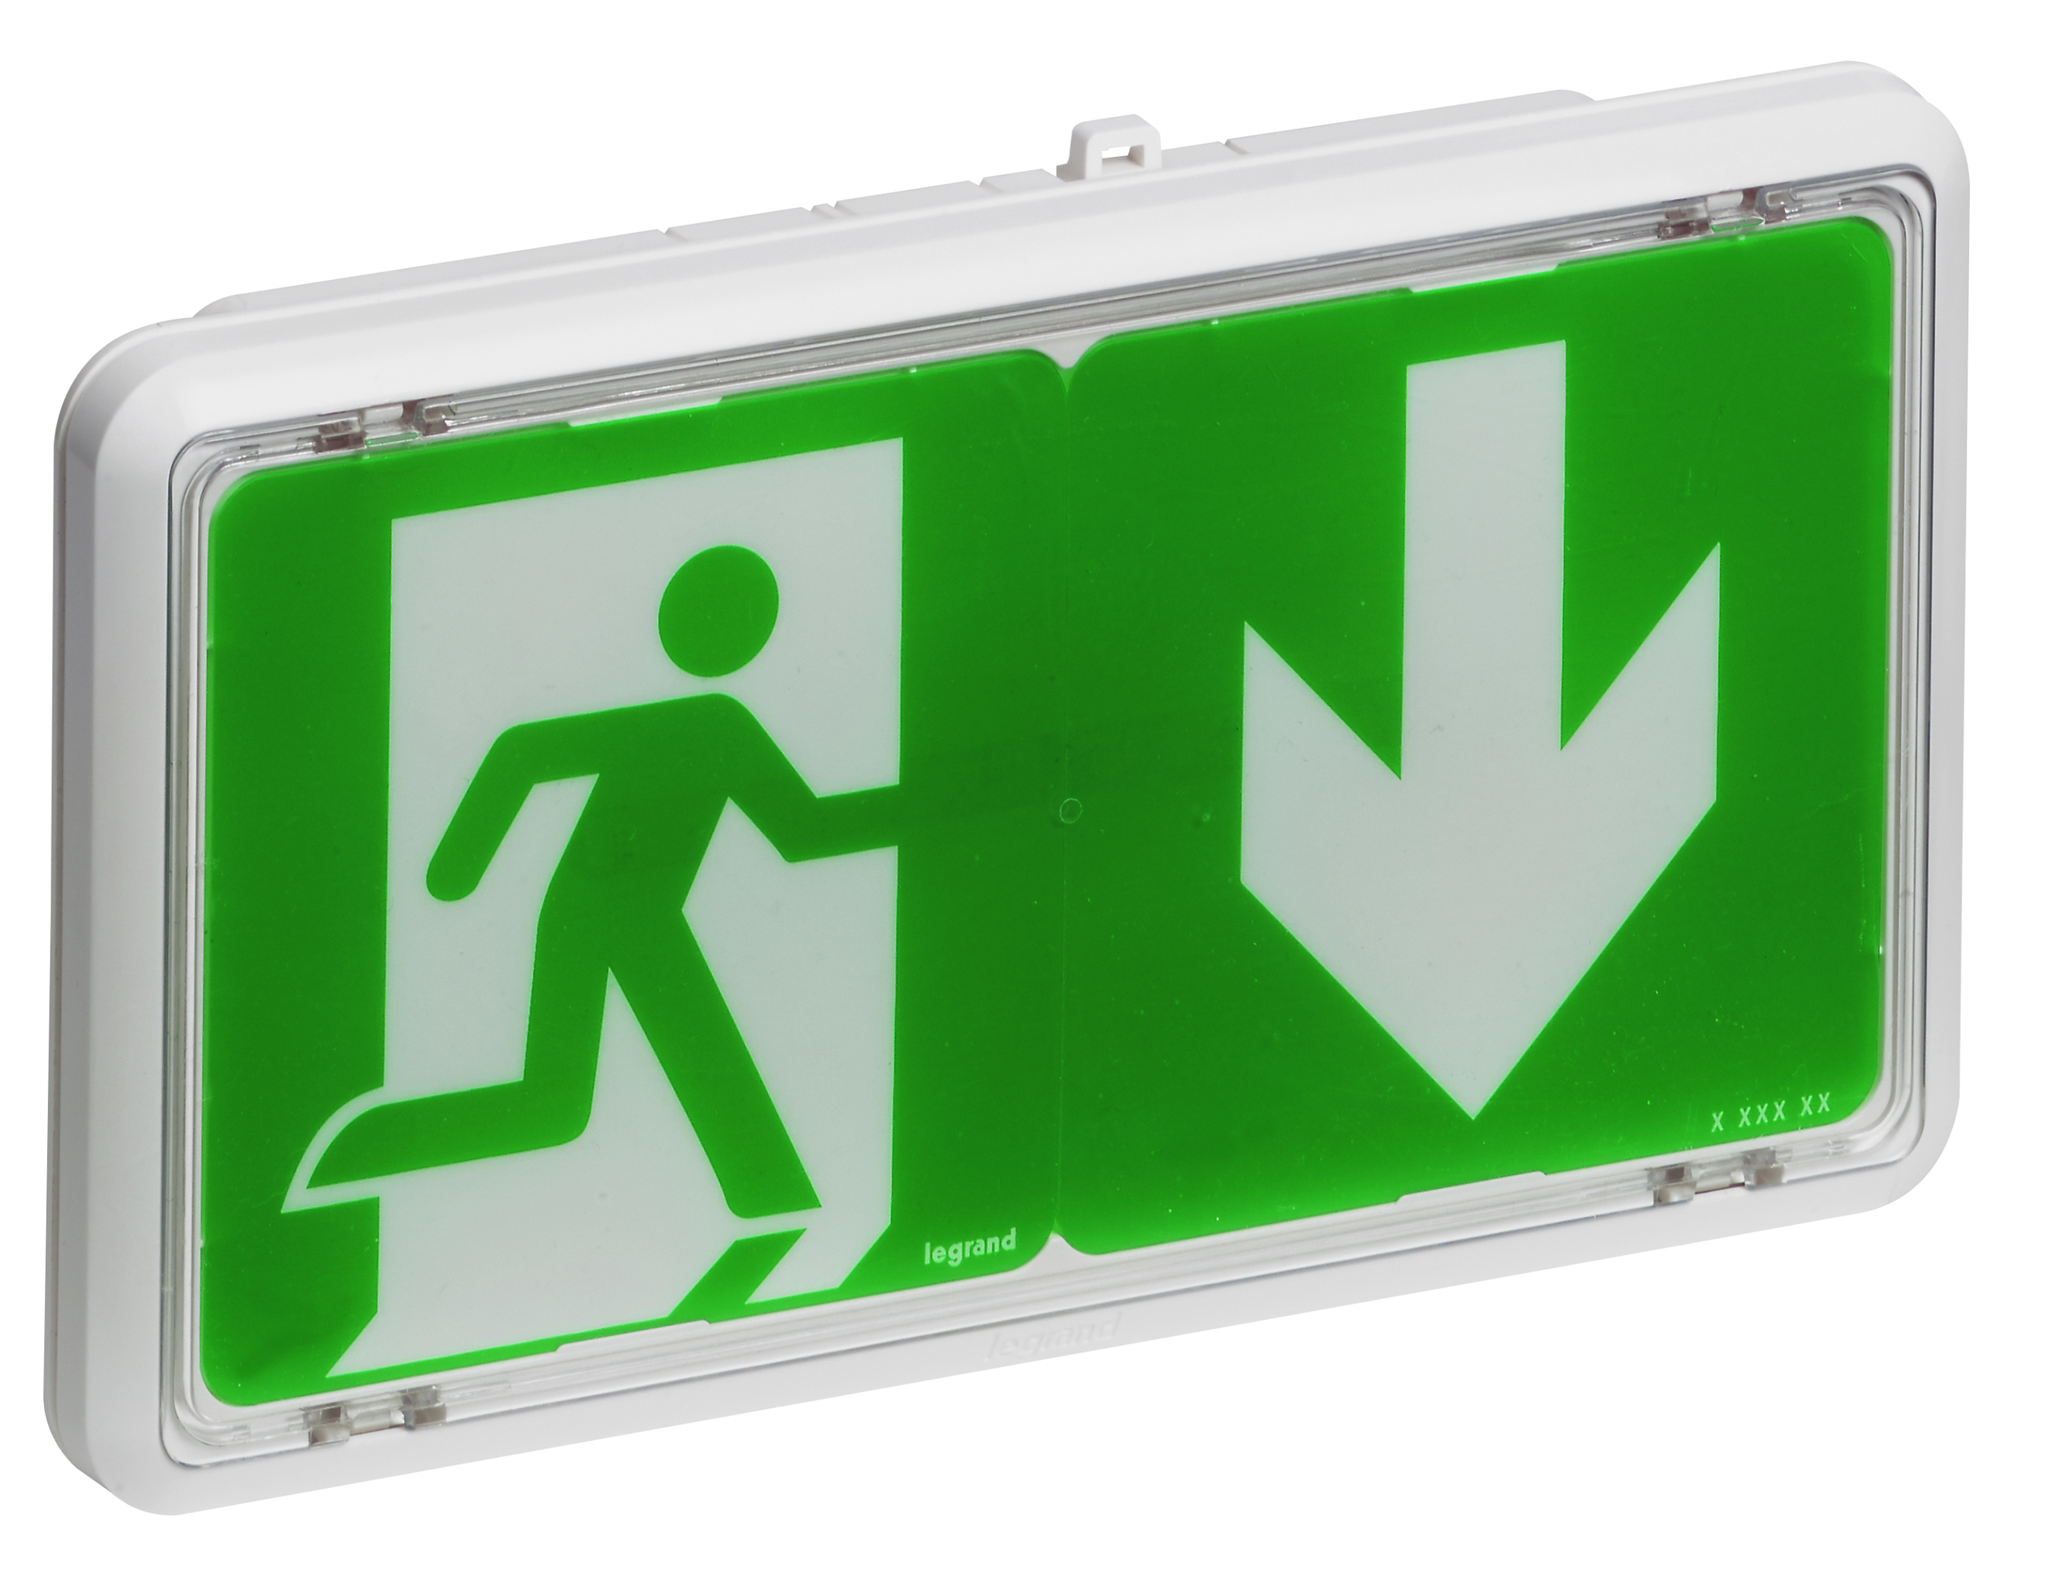 Green Legrand emergency lighting